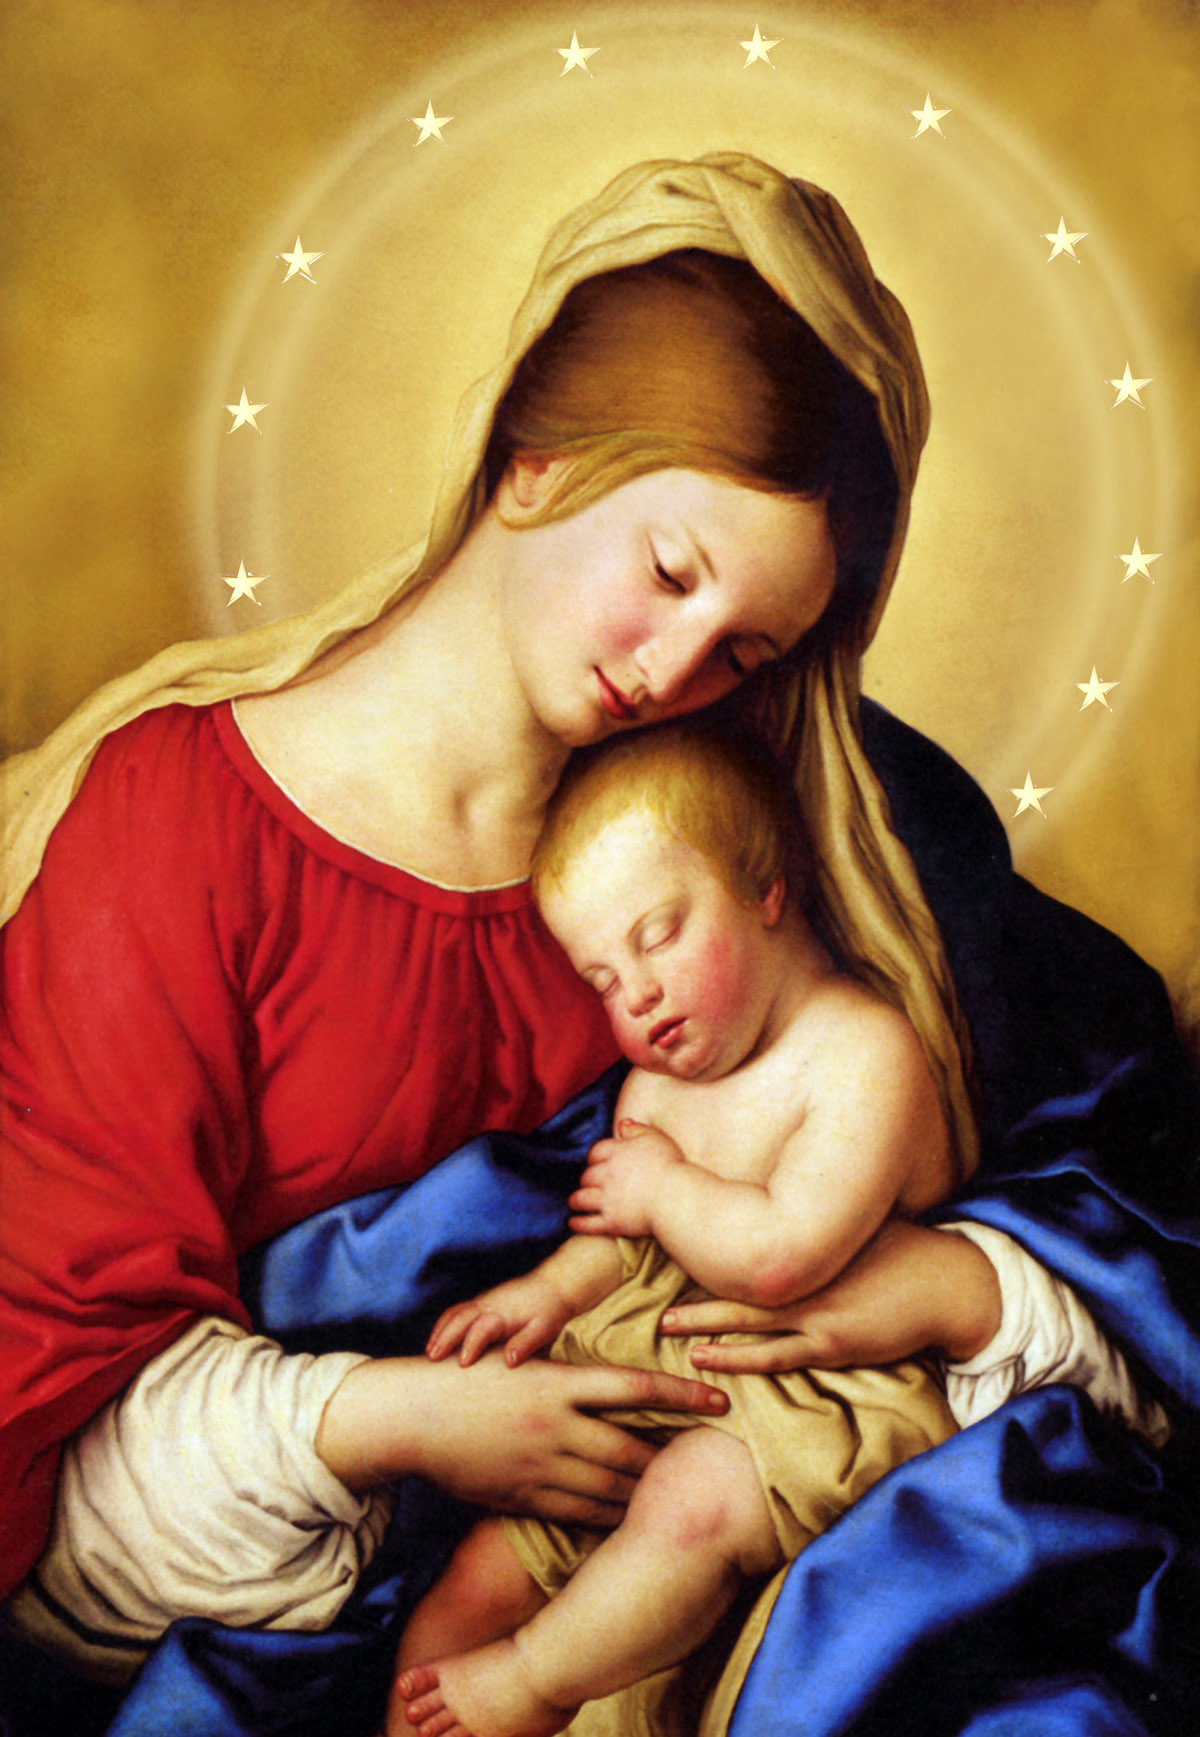 Monday, December 31 - Solemnity of Mary, The Holy Mother of God